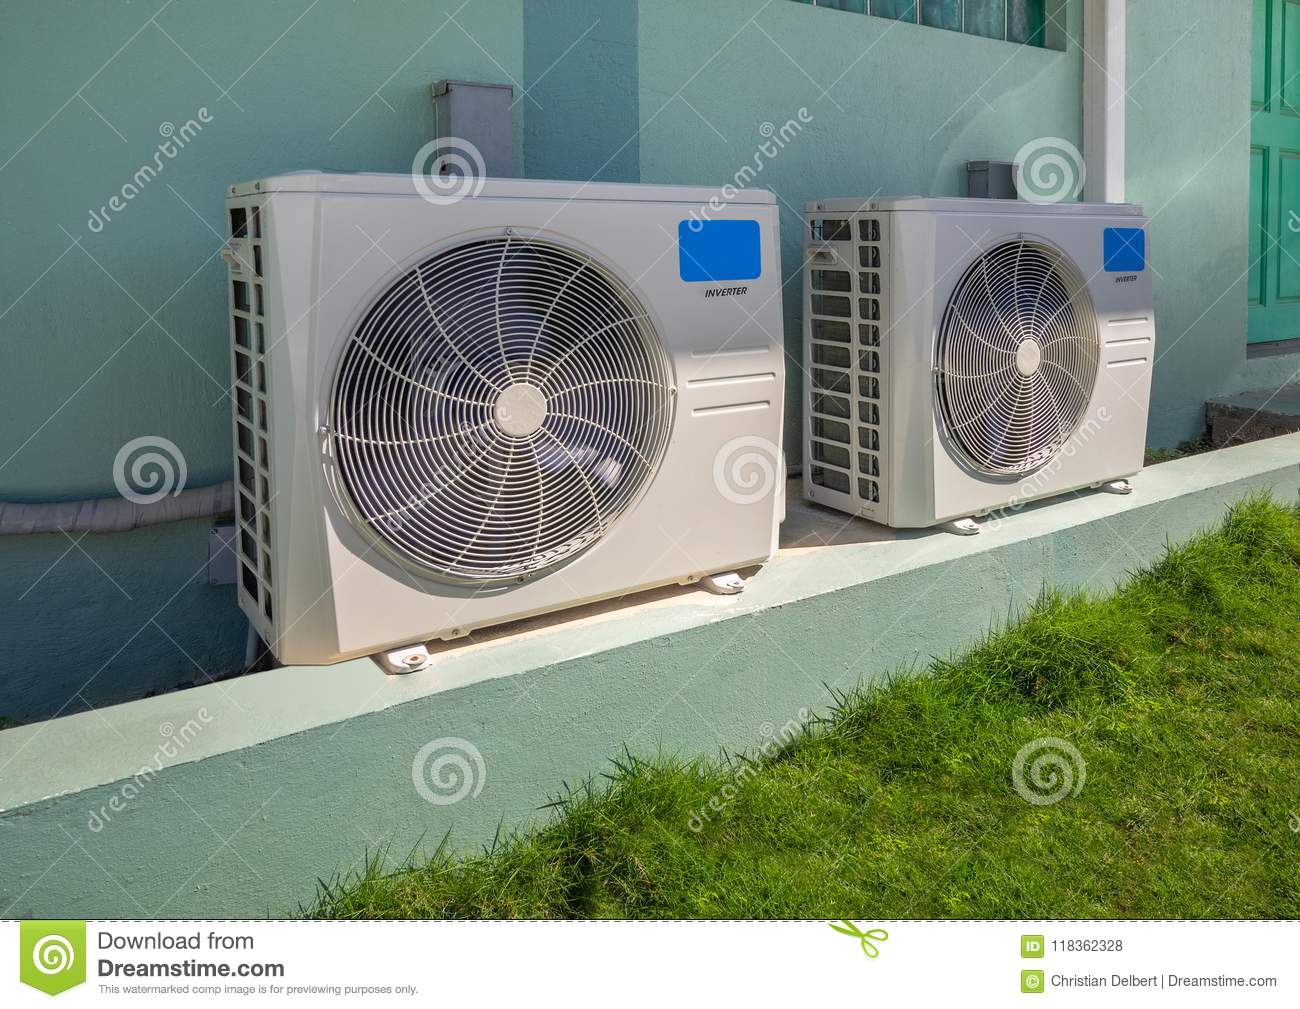 ac heater unit air conditioning air conditioning units outside an apartment complex conditioning units outside an apartment complex stock photo